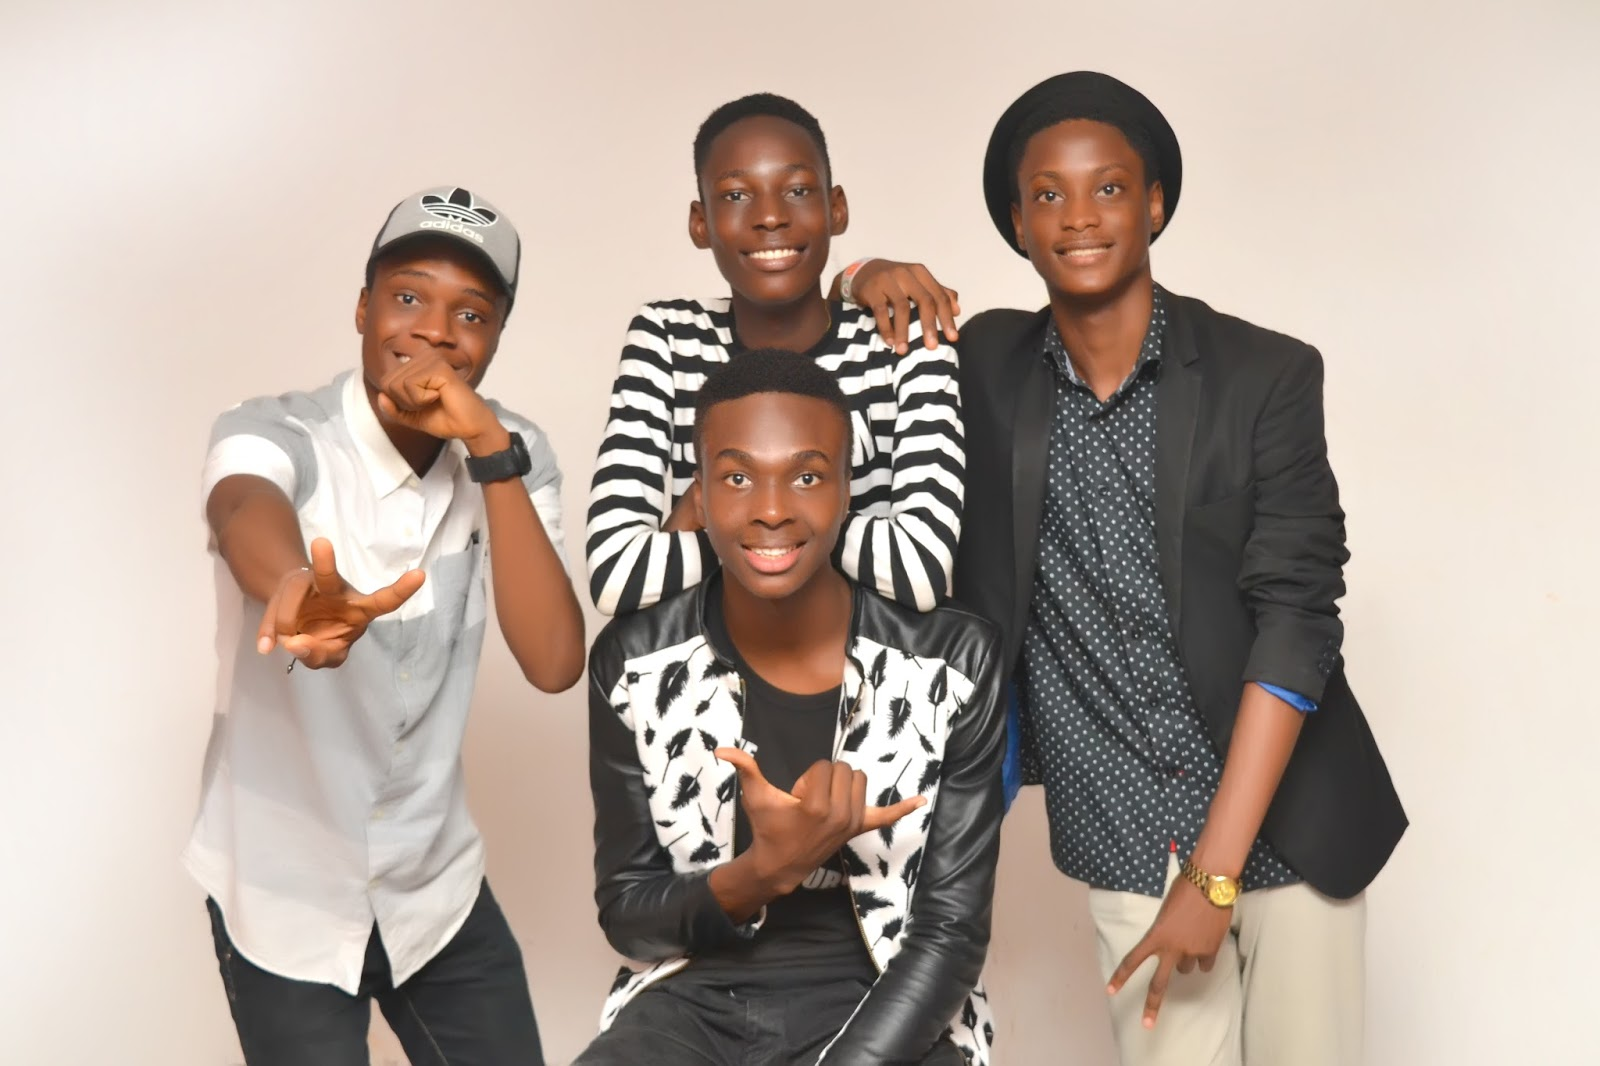 Francisca Oma's Blog: Meet the JECE Music Band who started